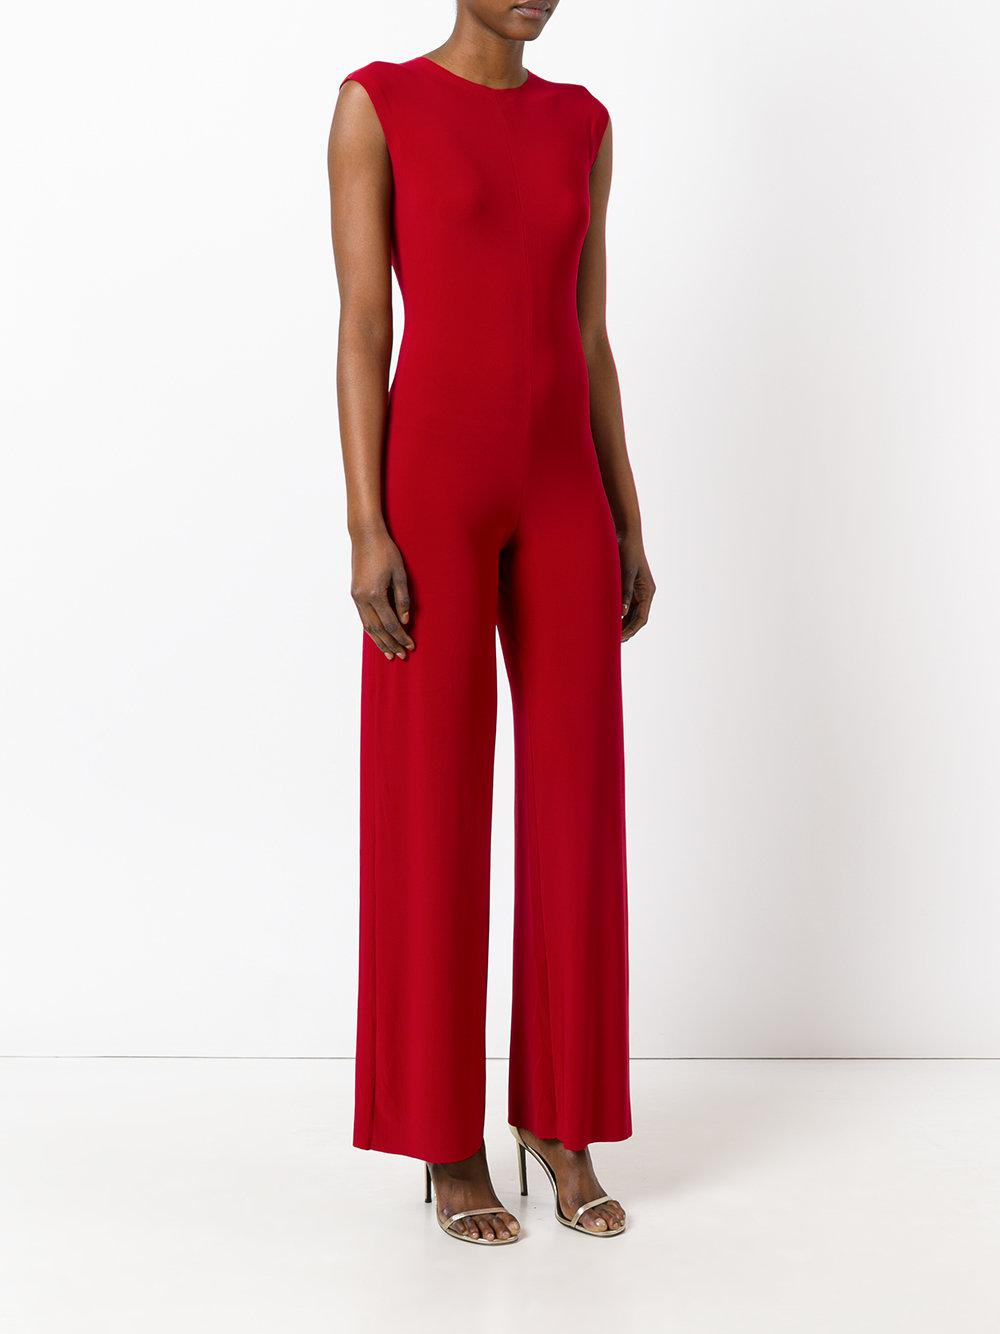 a6992e3a9128 Norma Kamali - Red Fitted Jumpsuit - Lyst. View fullscreen